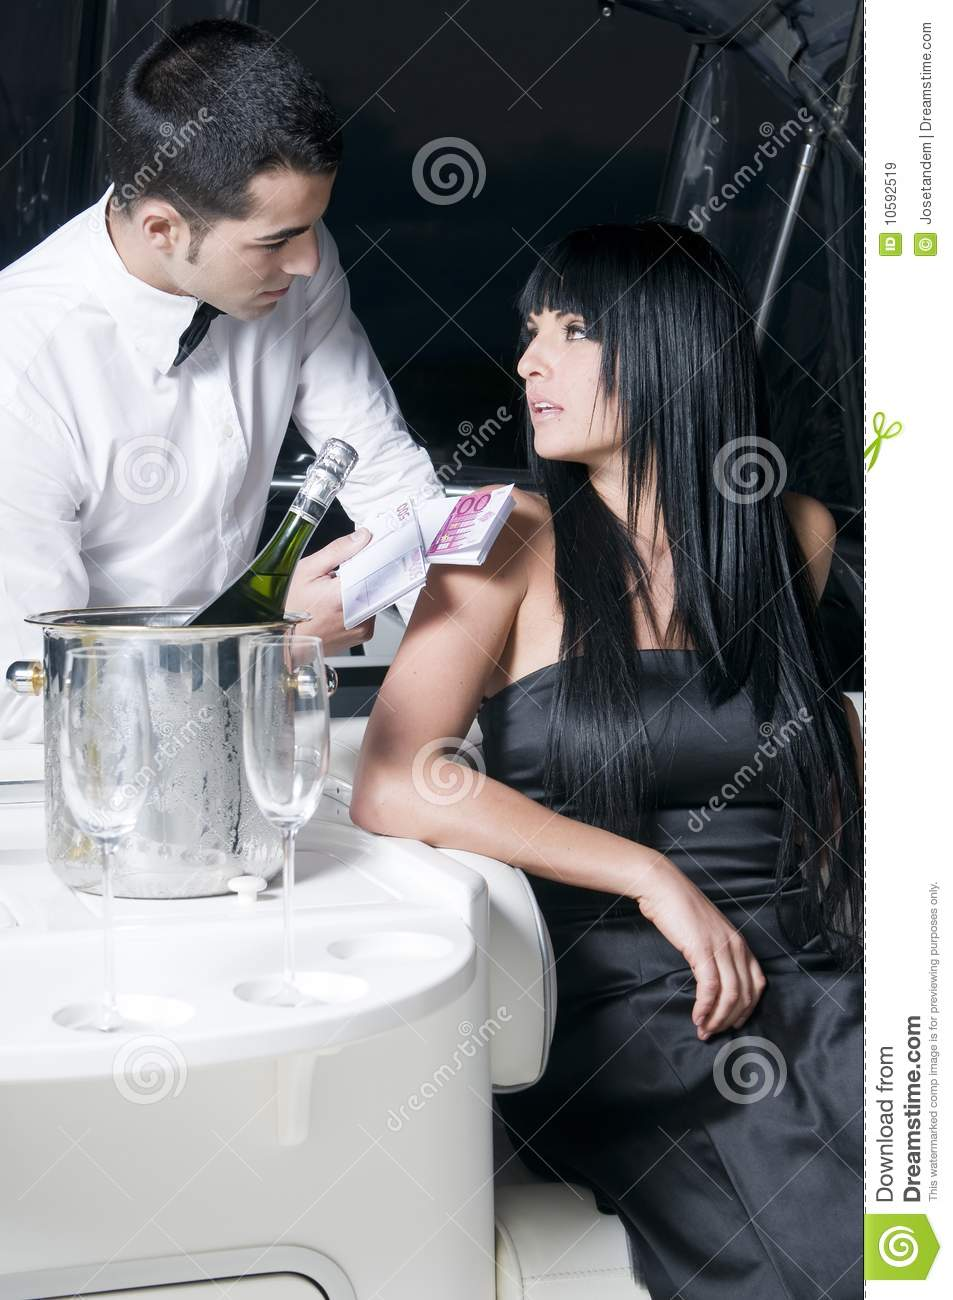 Man Giving Money To A Woman In A Bar Stock Image Image